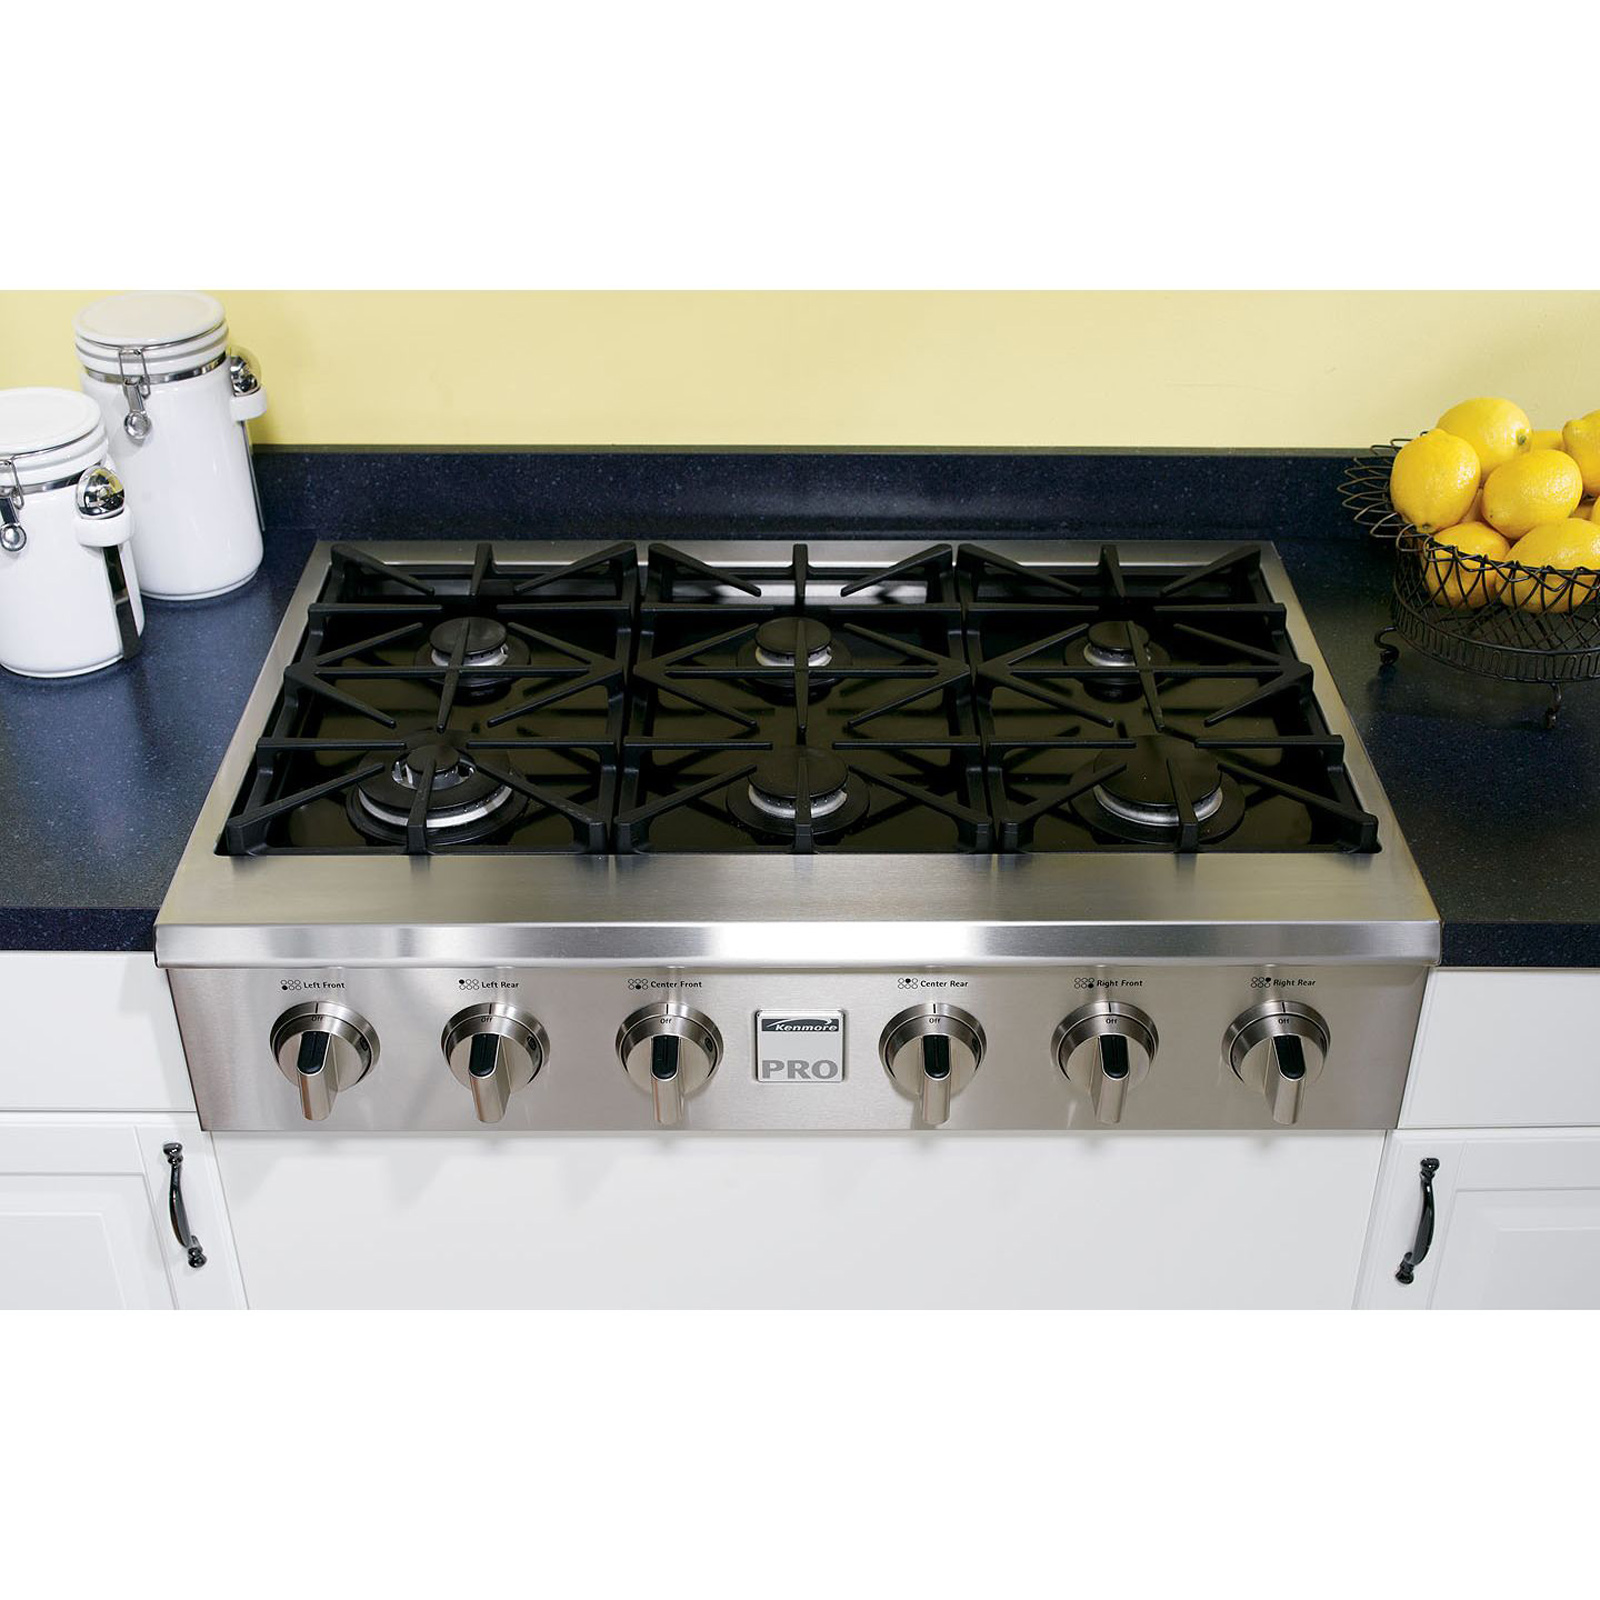 Gas Cooktop Installation Kenmore Pro 30503 36 Quot Slide In Ceramic Glass Gas Cooktop